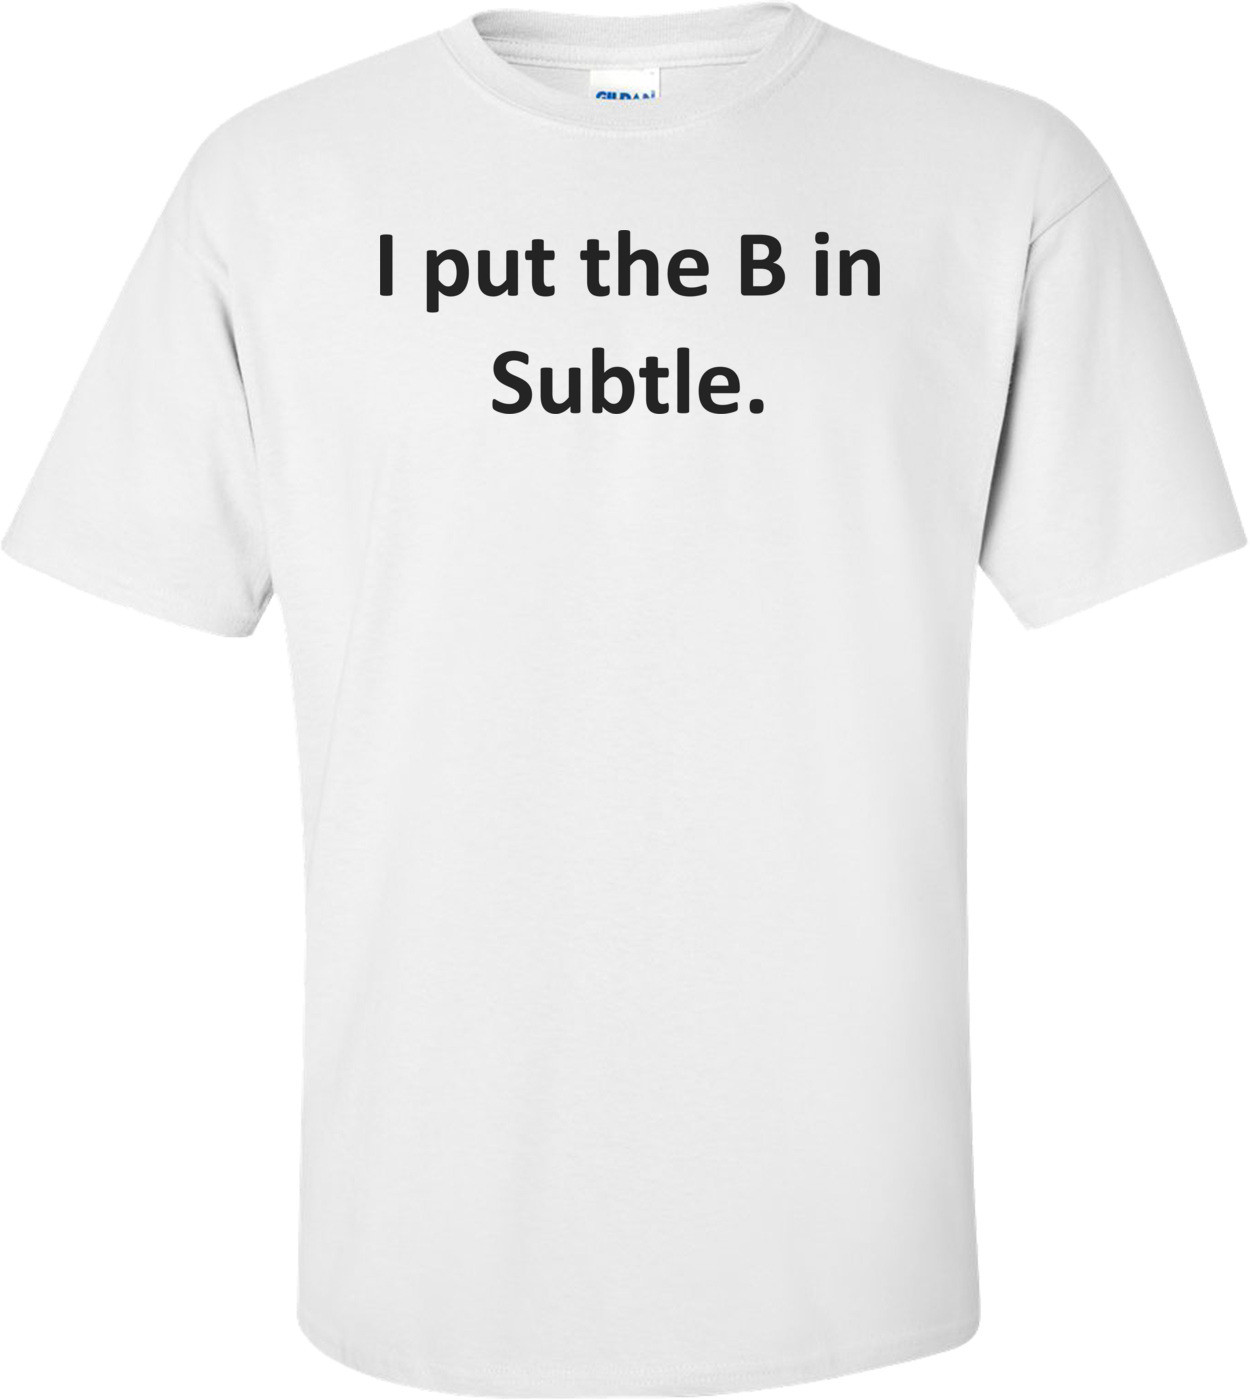 I put the B in Subtle. Shirt